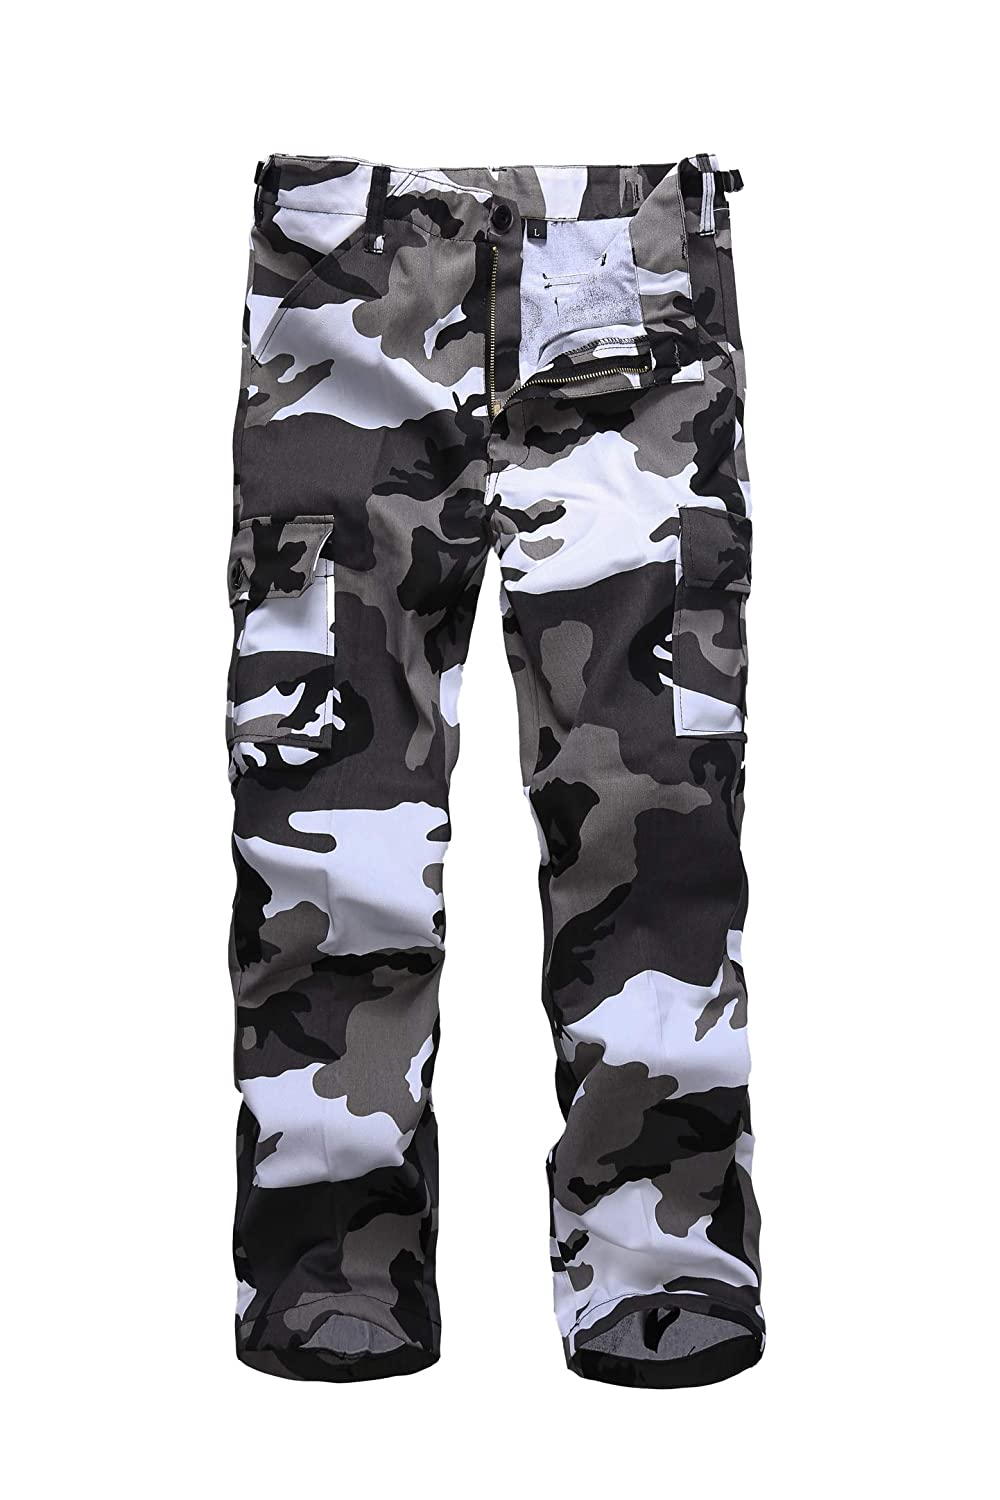 BACKBONE Boys Girls Kids Combat Army Ranger Camping Outdoor camo Cargo Pants Trousers